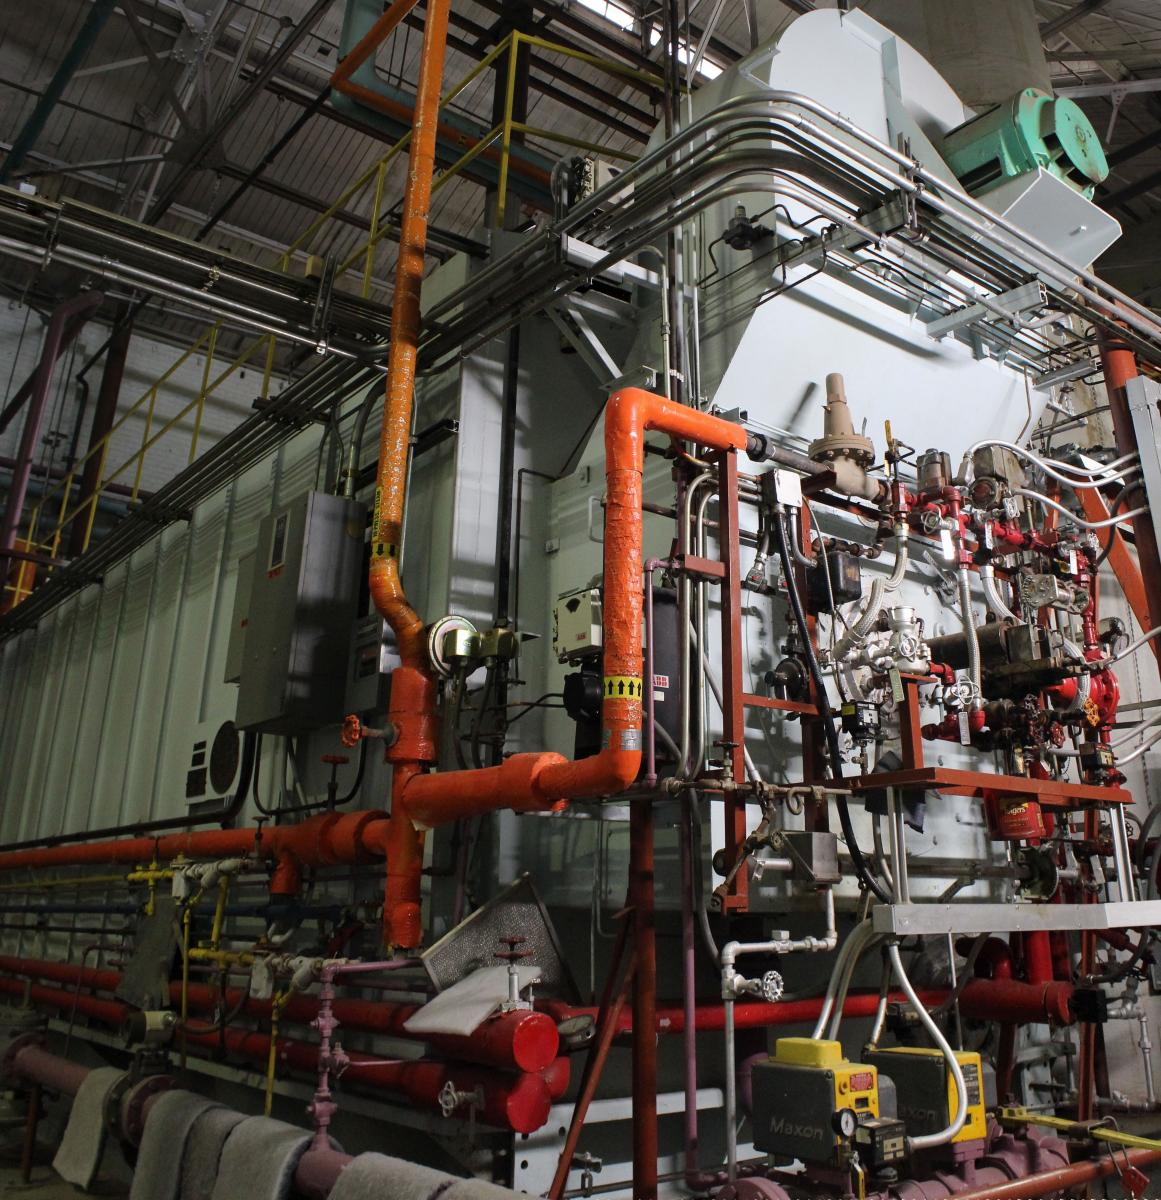 East Campus Utility Plant Utility Services University